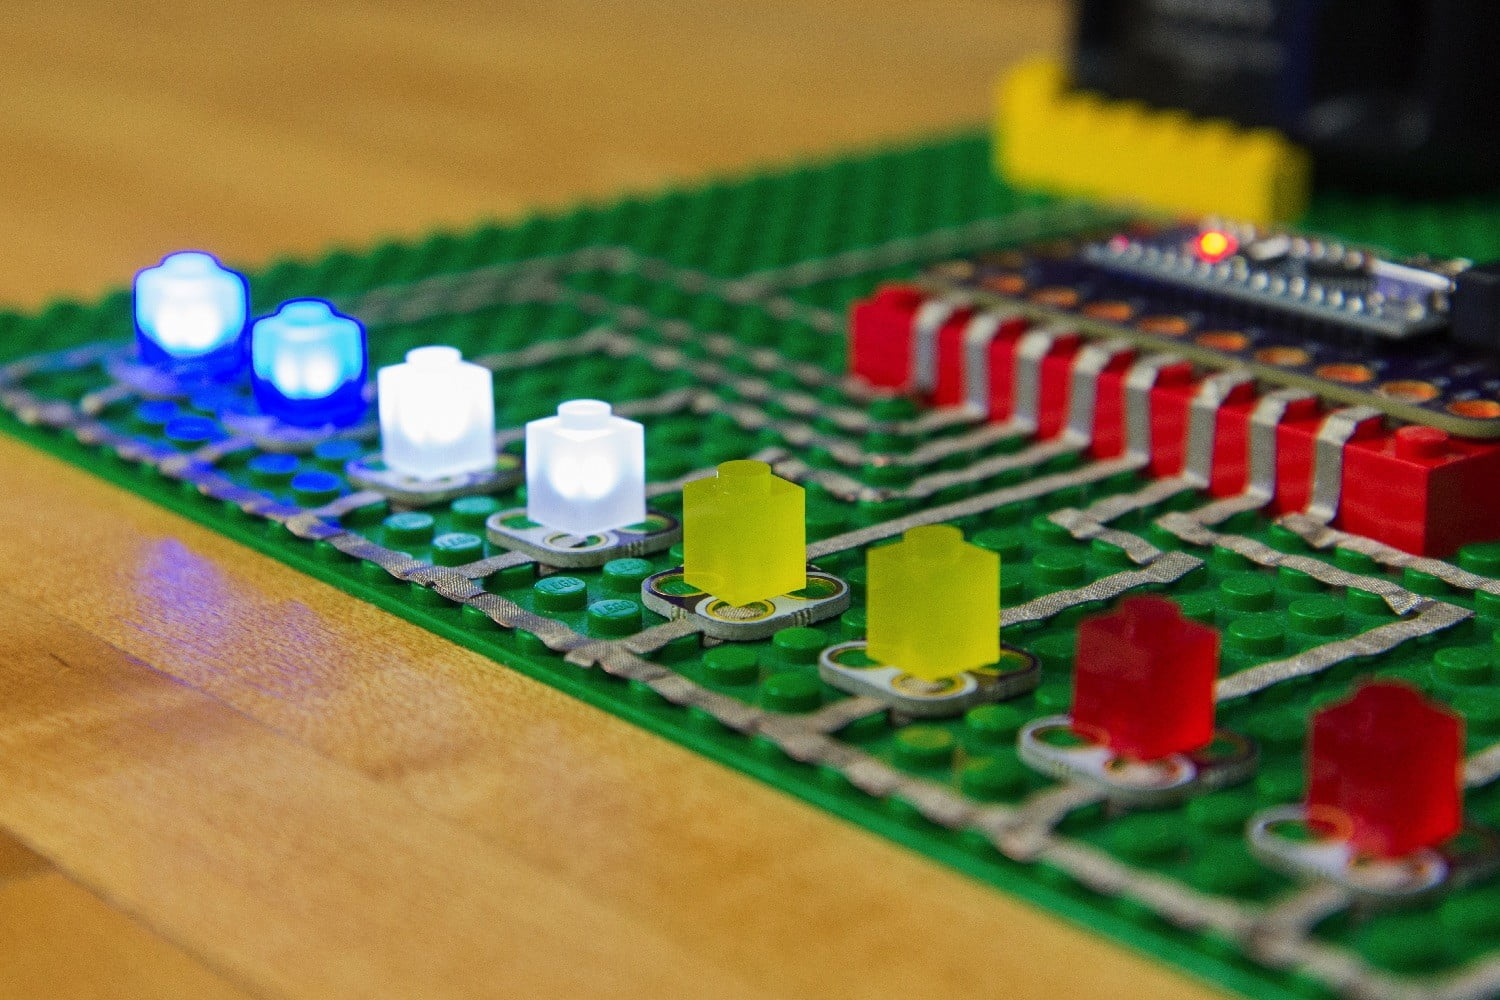 crazy circuits are lego based electronics kits delivered to your